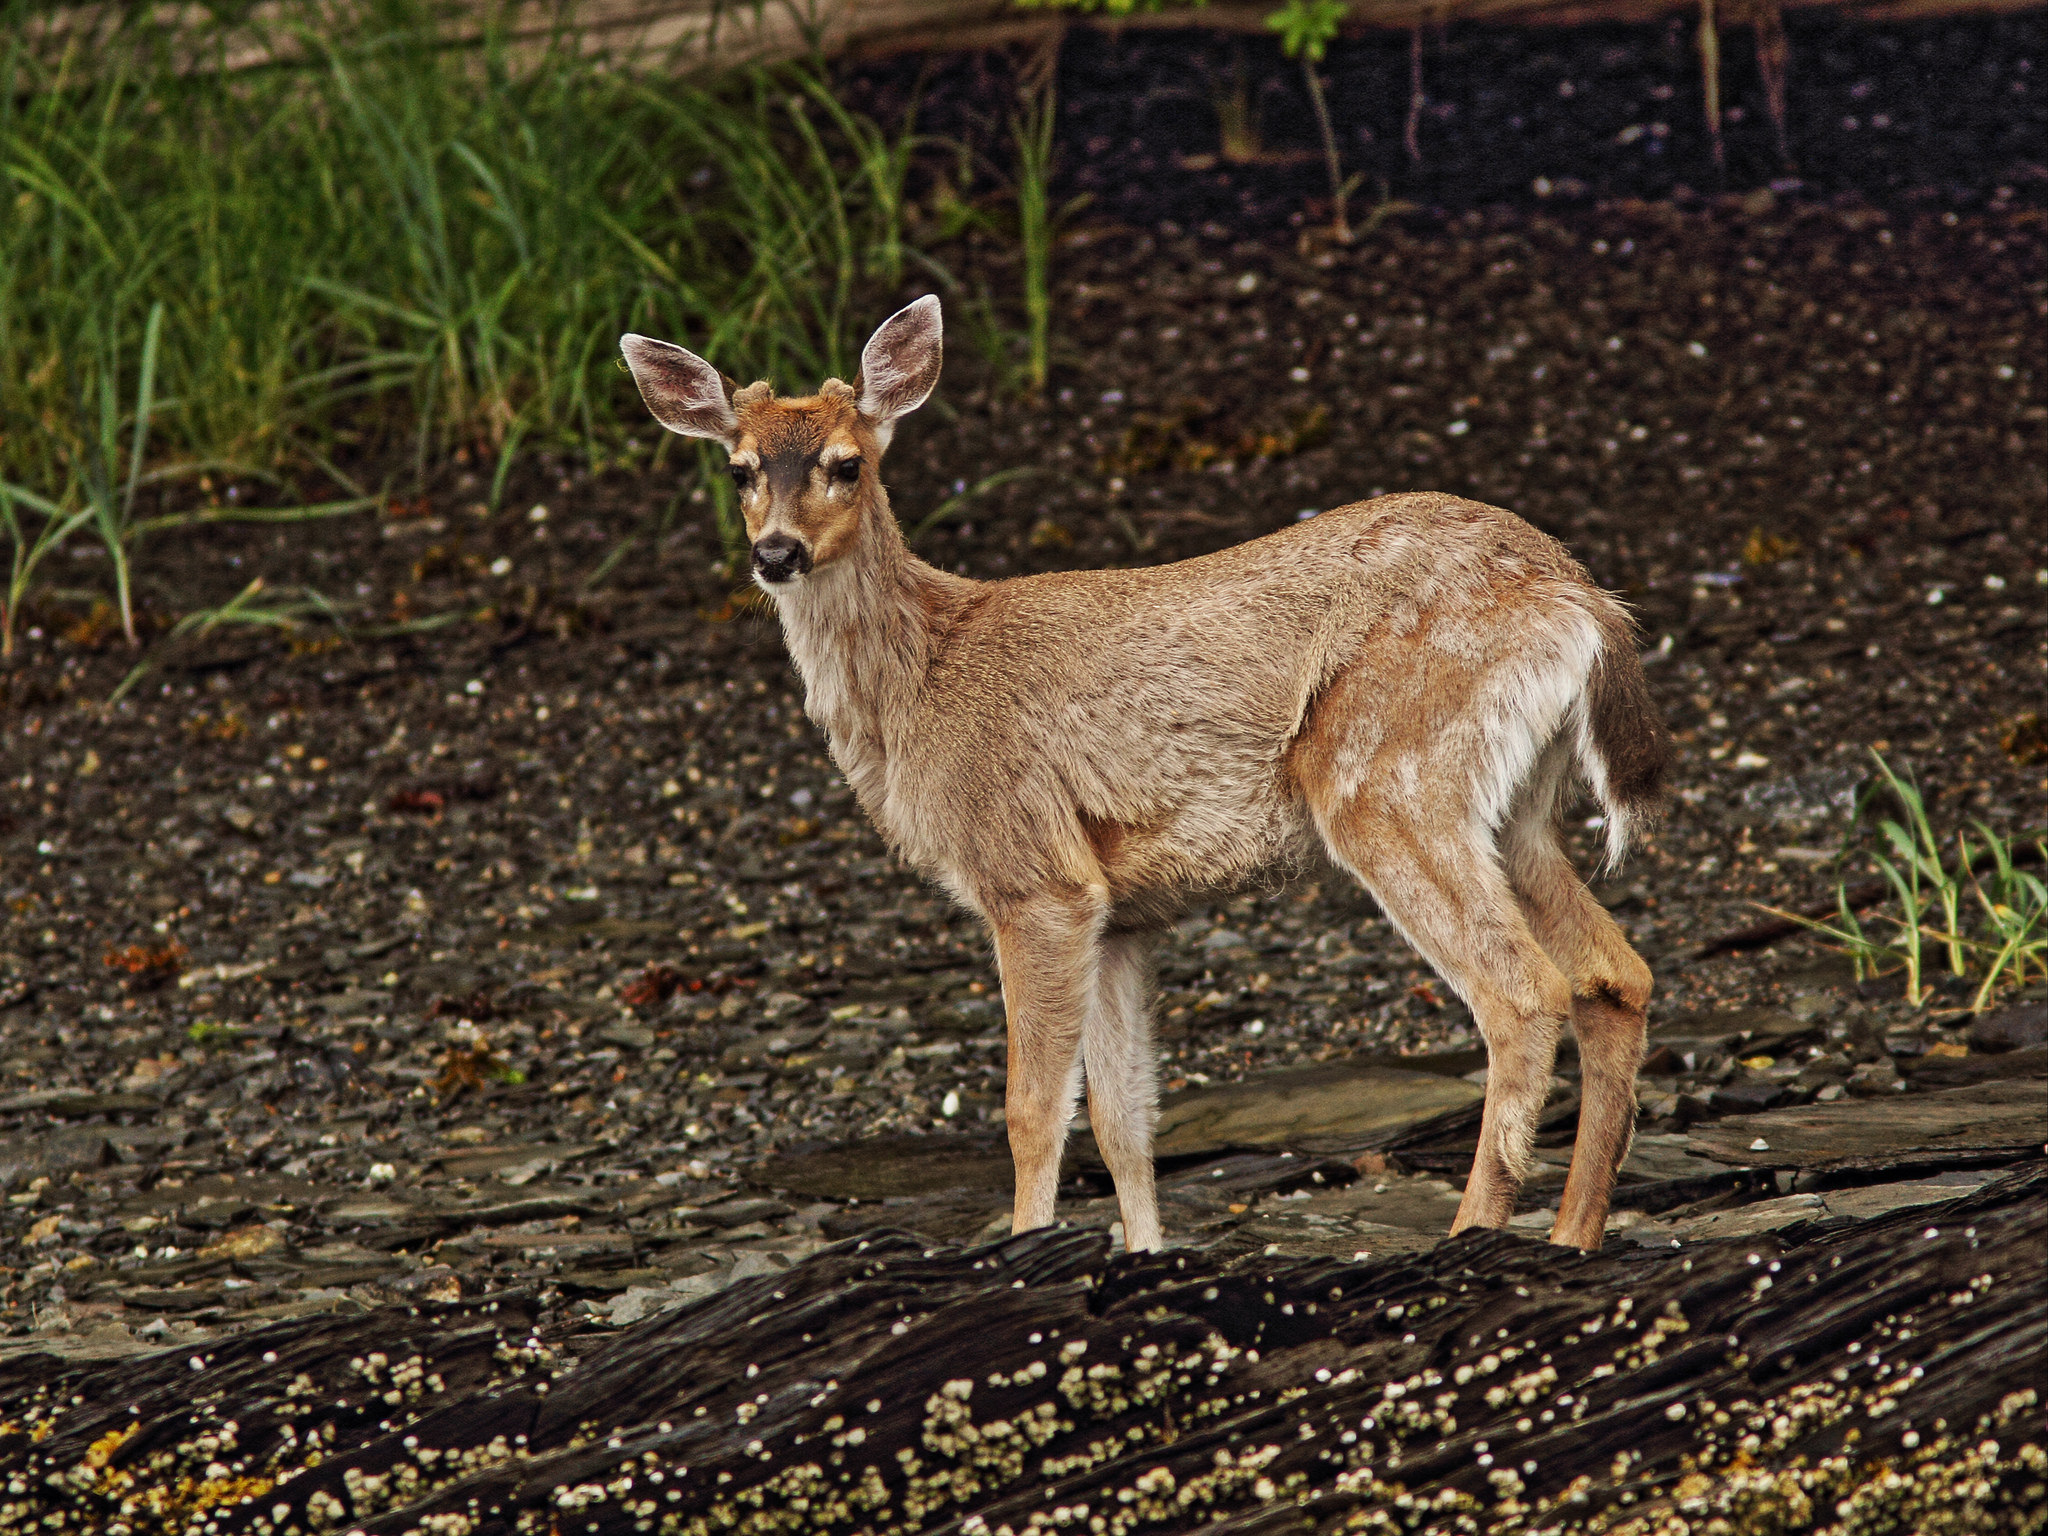 """A proposed delay in the start of """"doe season"""" is meant to protect fawns — but may not make sense biologically. (Creative Commons Photo by Kenneth Cole Schneider)"""